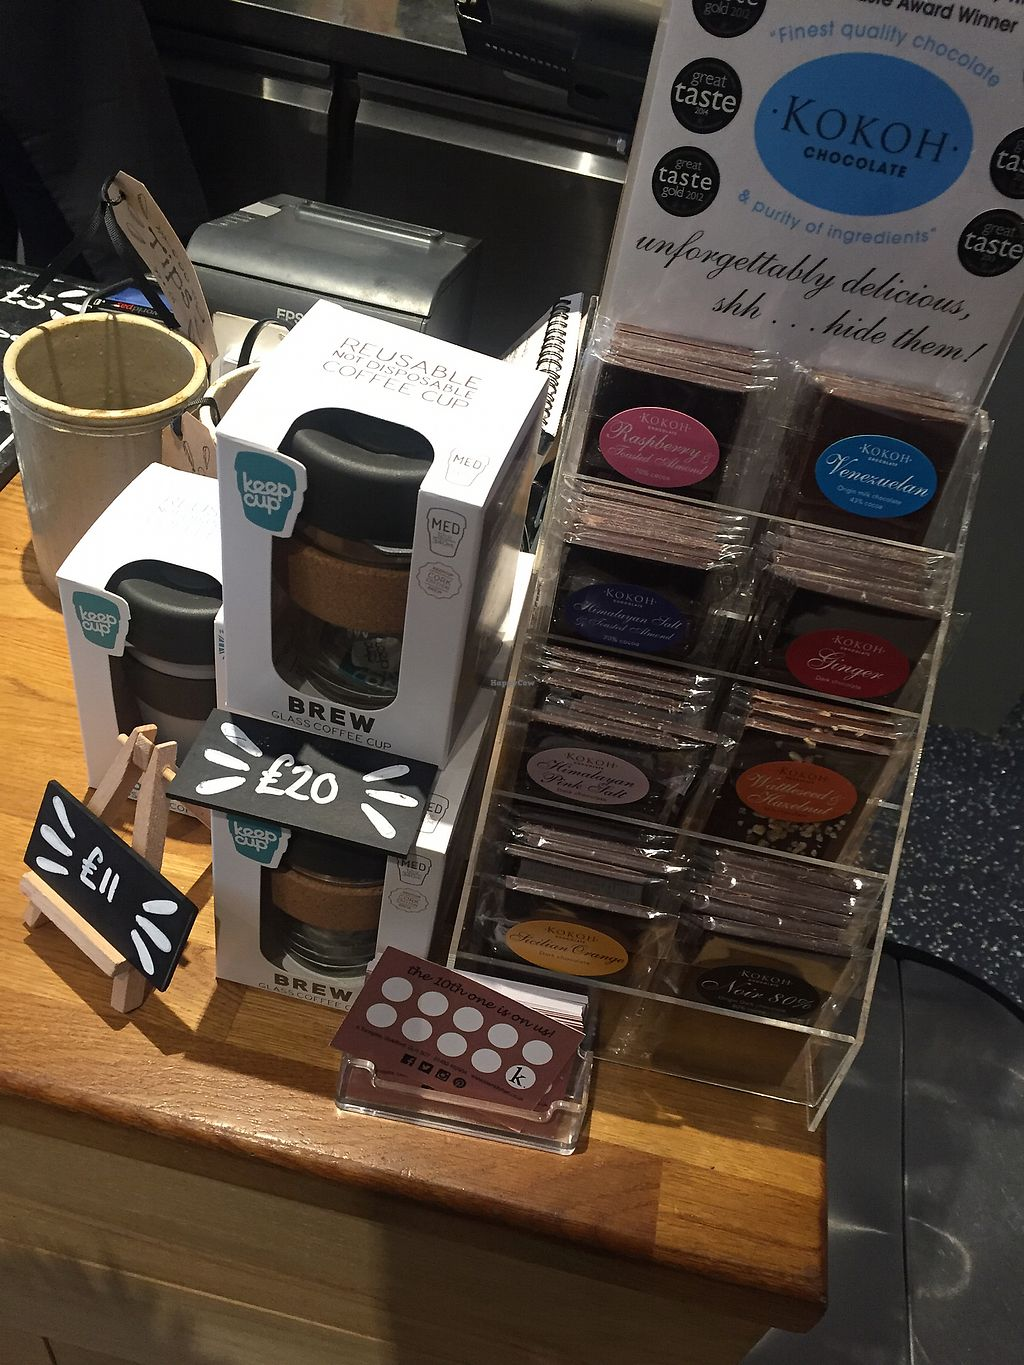 "Photo of Kalm Kitchen Cafe  by <a href=""/members/profile/bakeydoesntbake"">bakeydoesntbake</a> <br/>Reusable coffee cups & chocolate (some vegan) <br/> April 1, 2018  - <a href='/contact/abuse/image/106176/379559'>Report</a>"